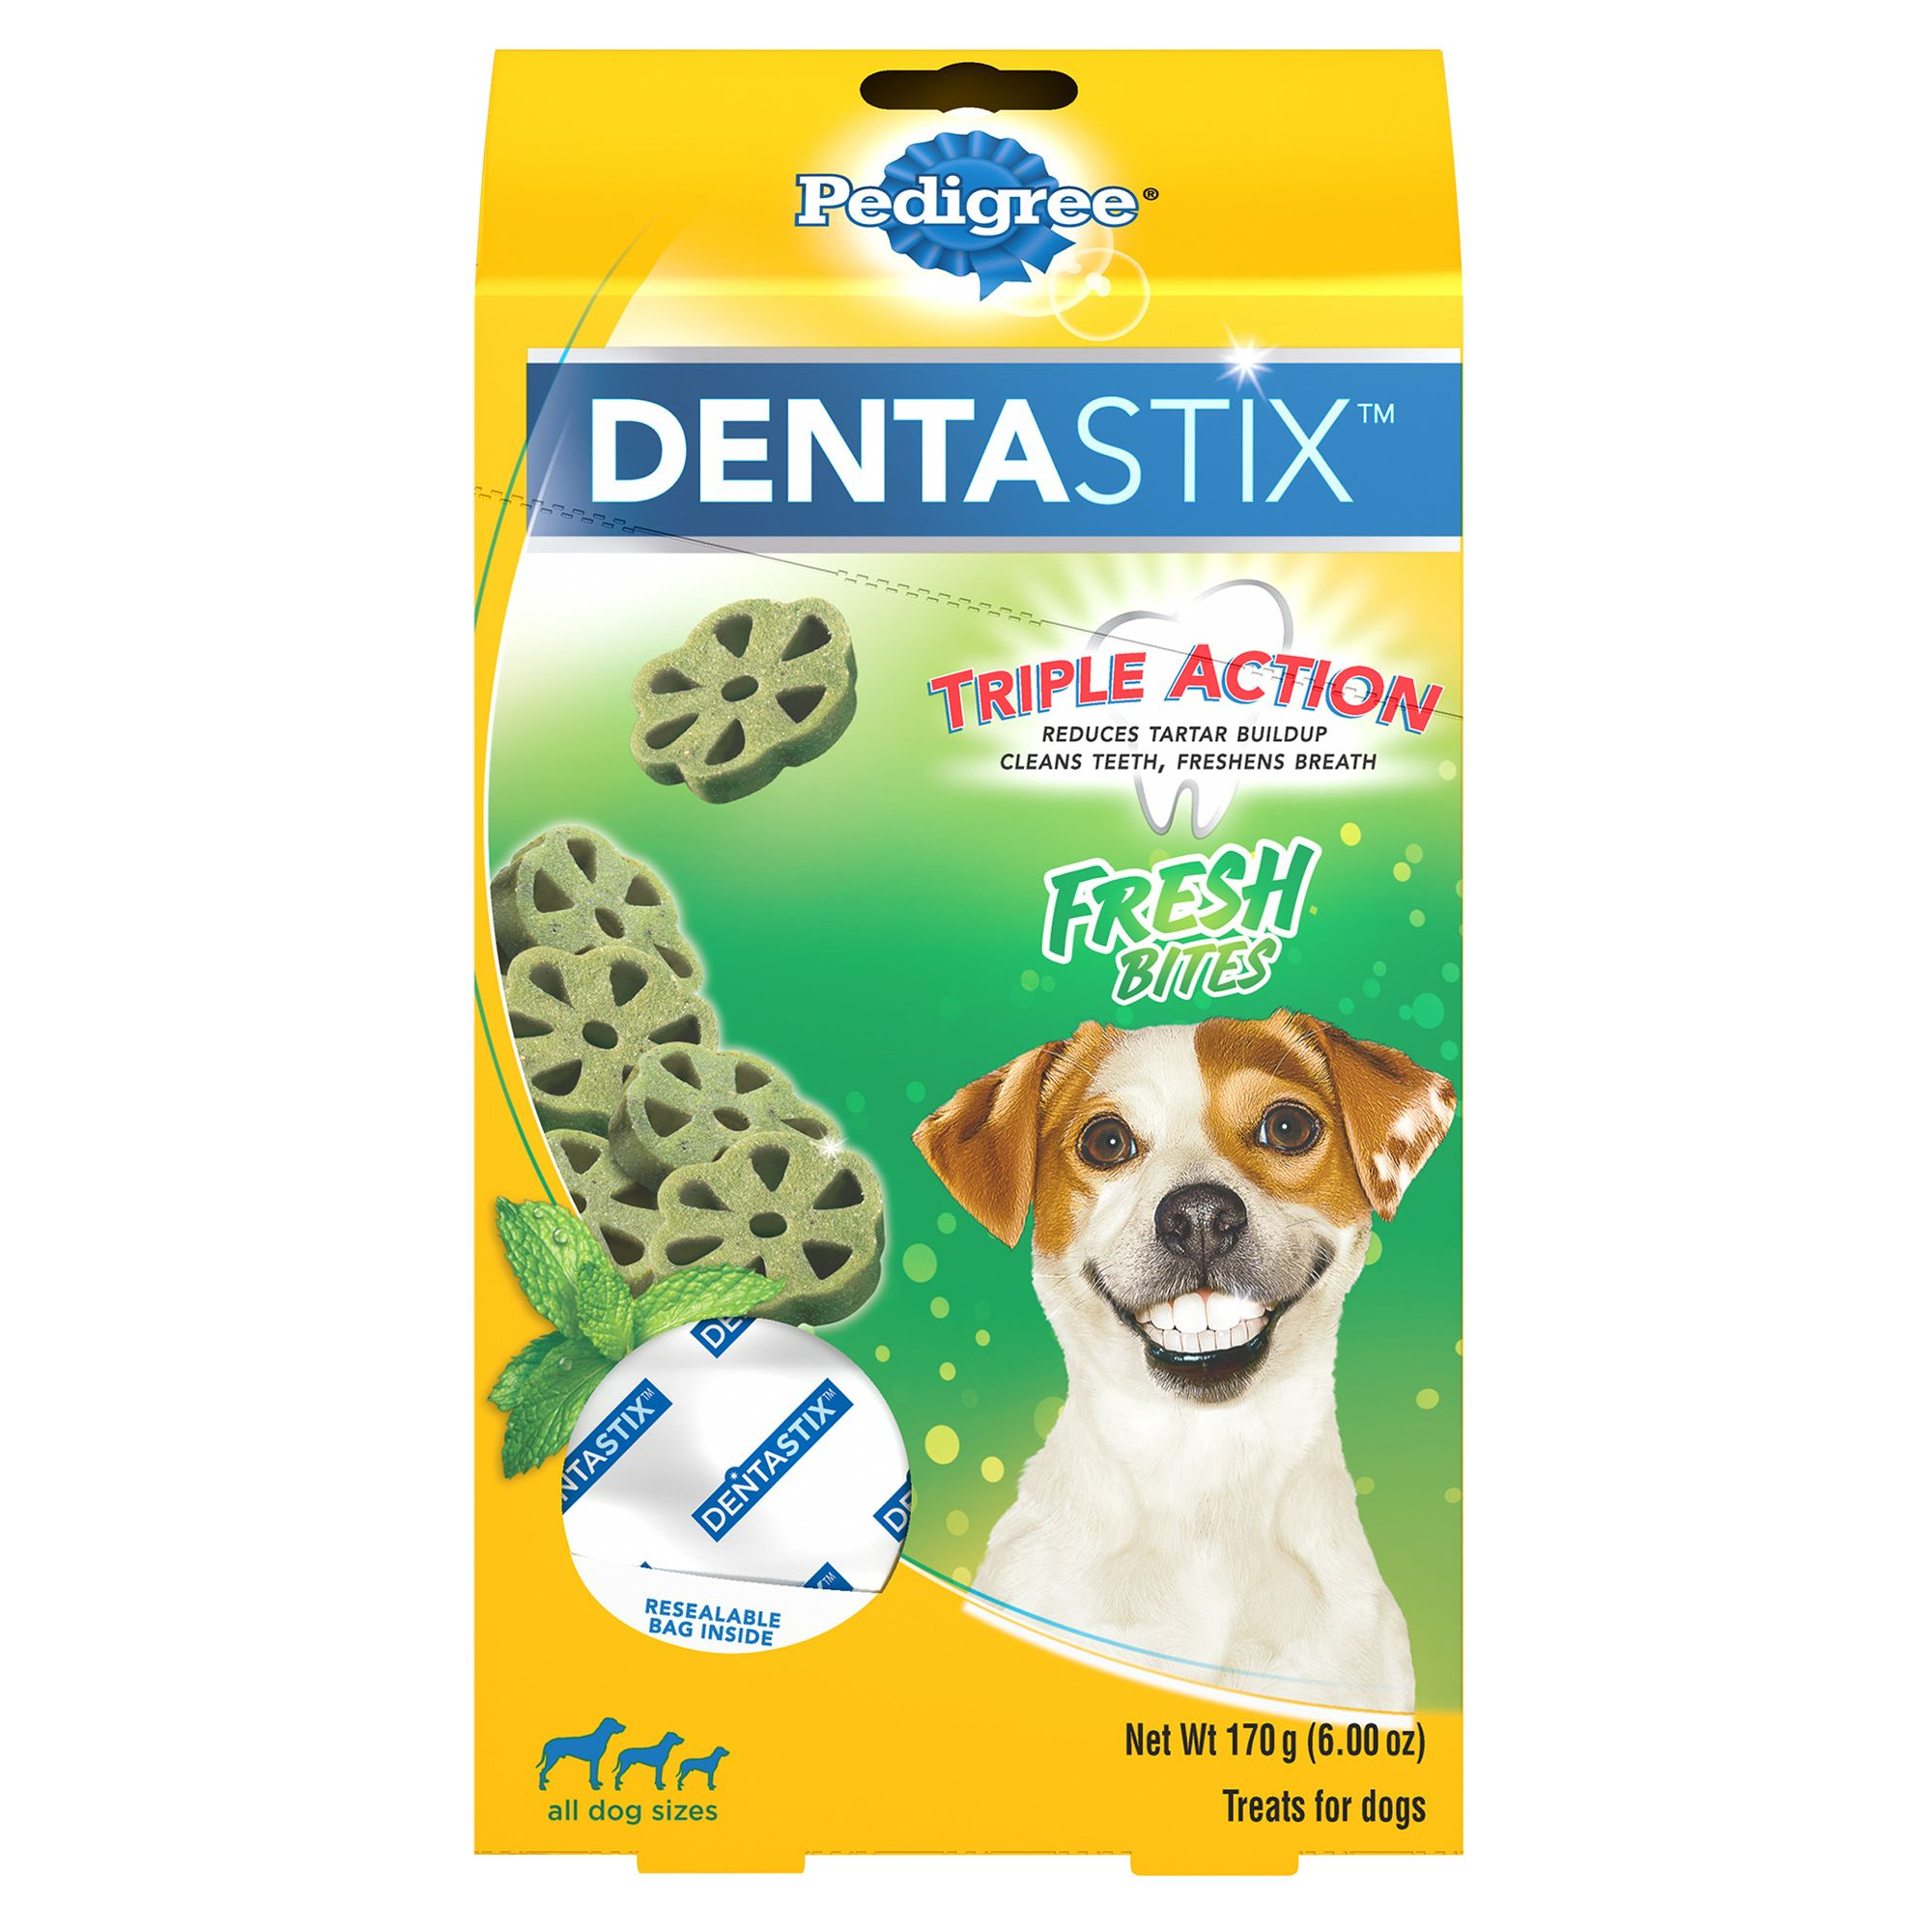 Pedigree® Dentastix® Fresh Bites Dental Dog Treat si